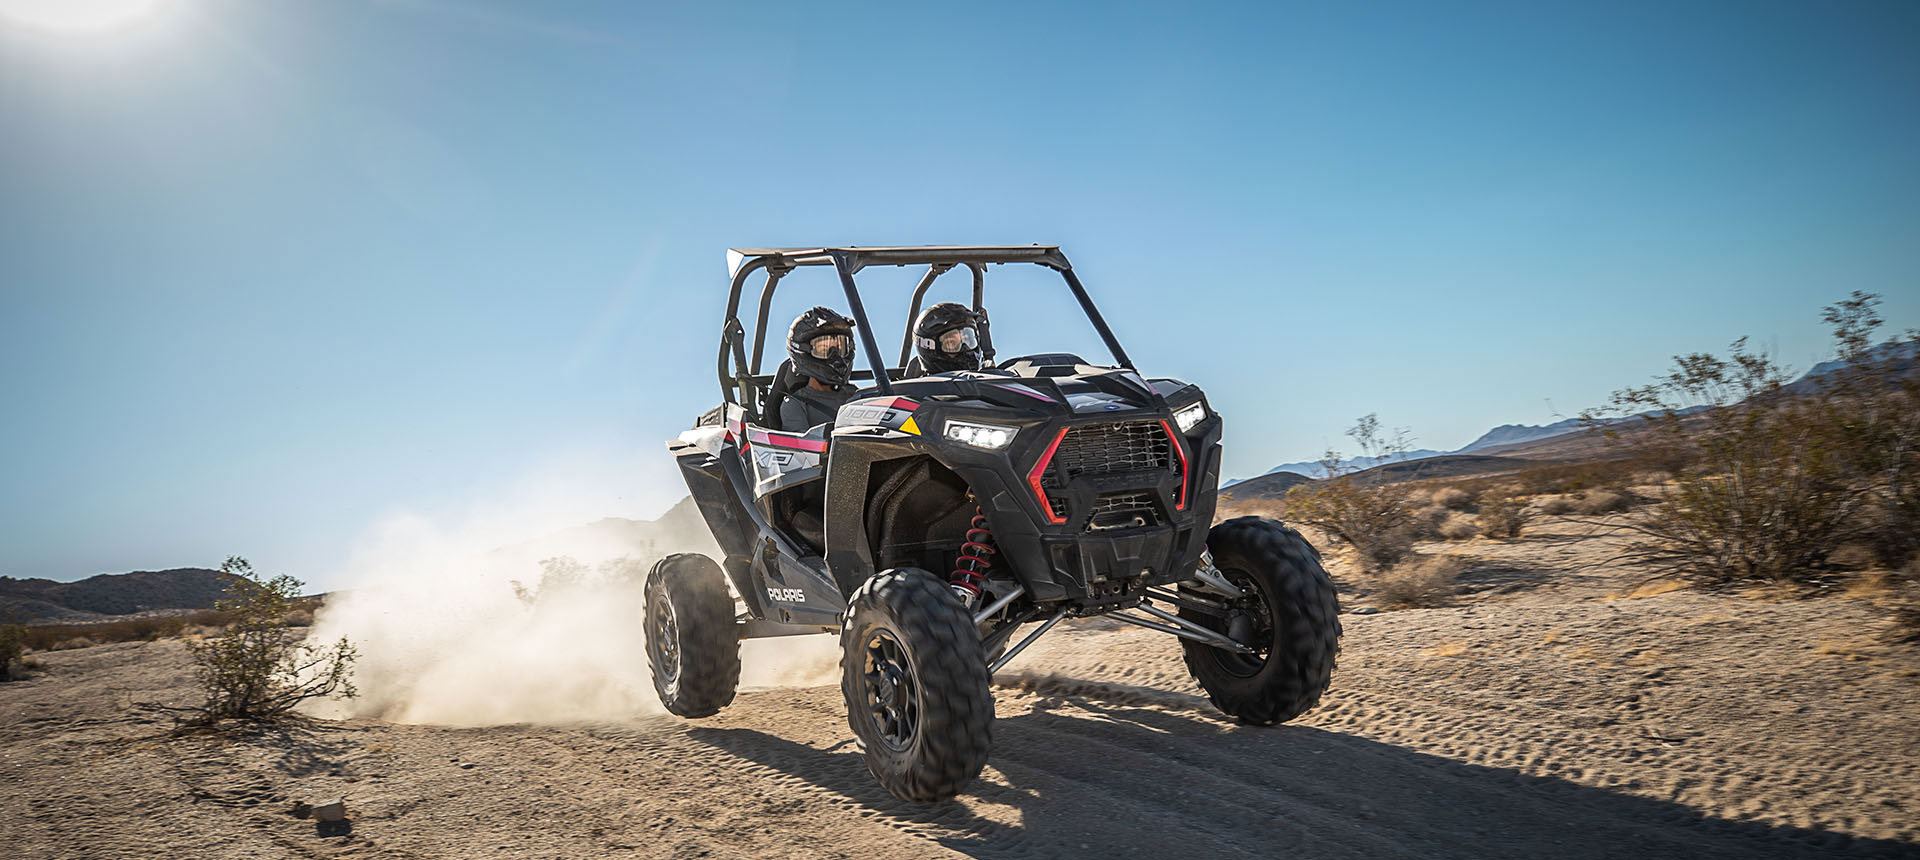 2019 Polaris RZR XP 1000 in Bigfork, Minnesota